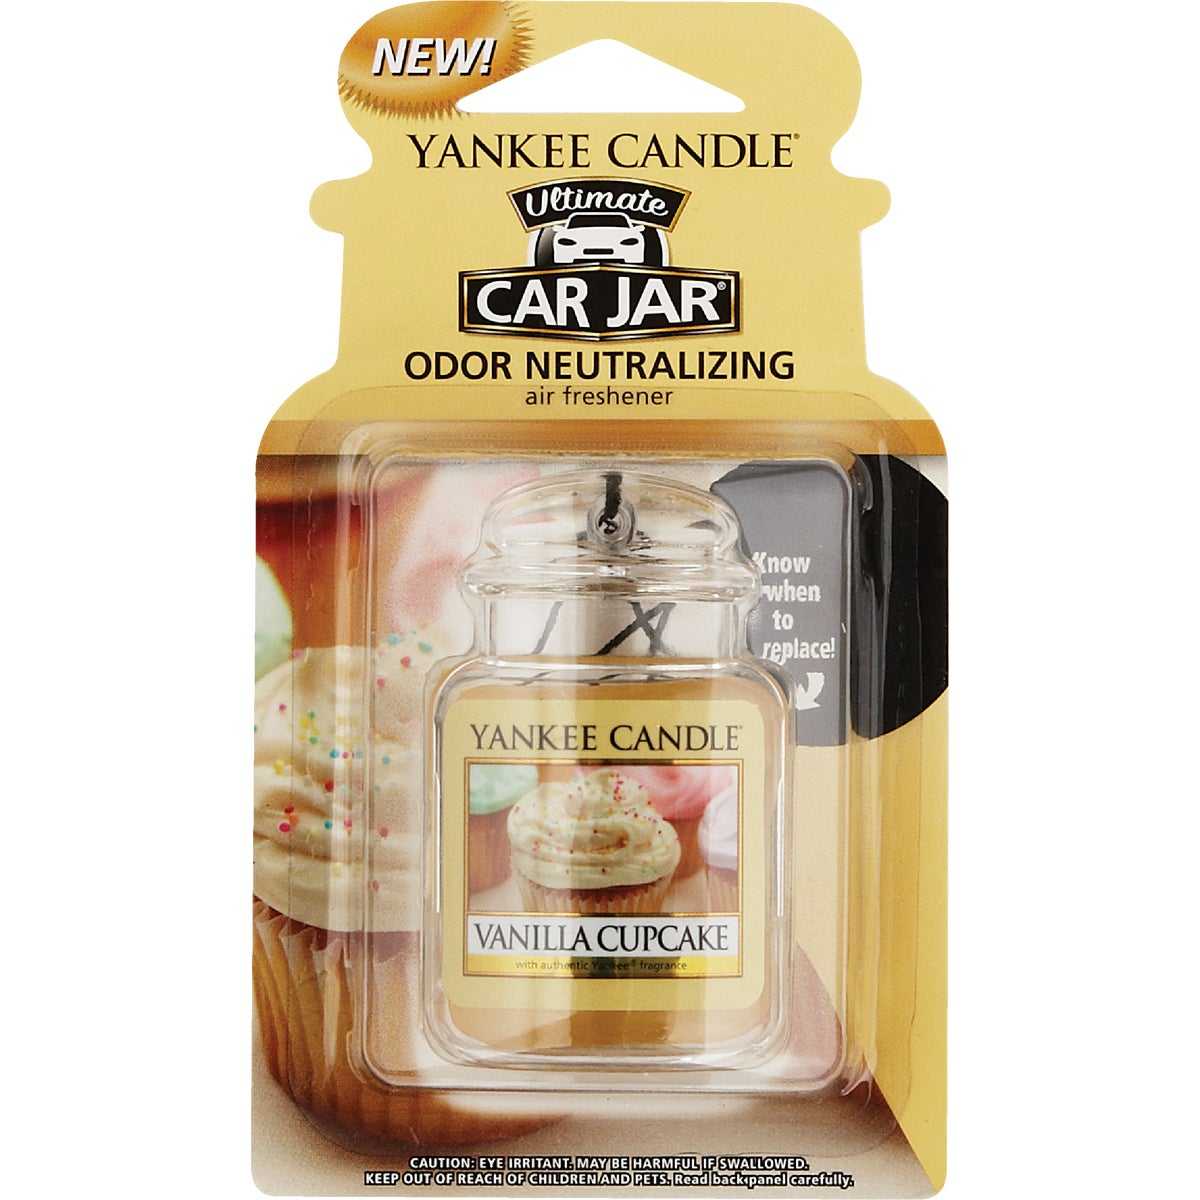 VANILLA CUPCAKE CAR JAR - 1220923 by Yankee Candle Co